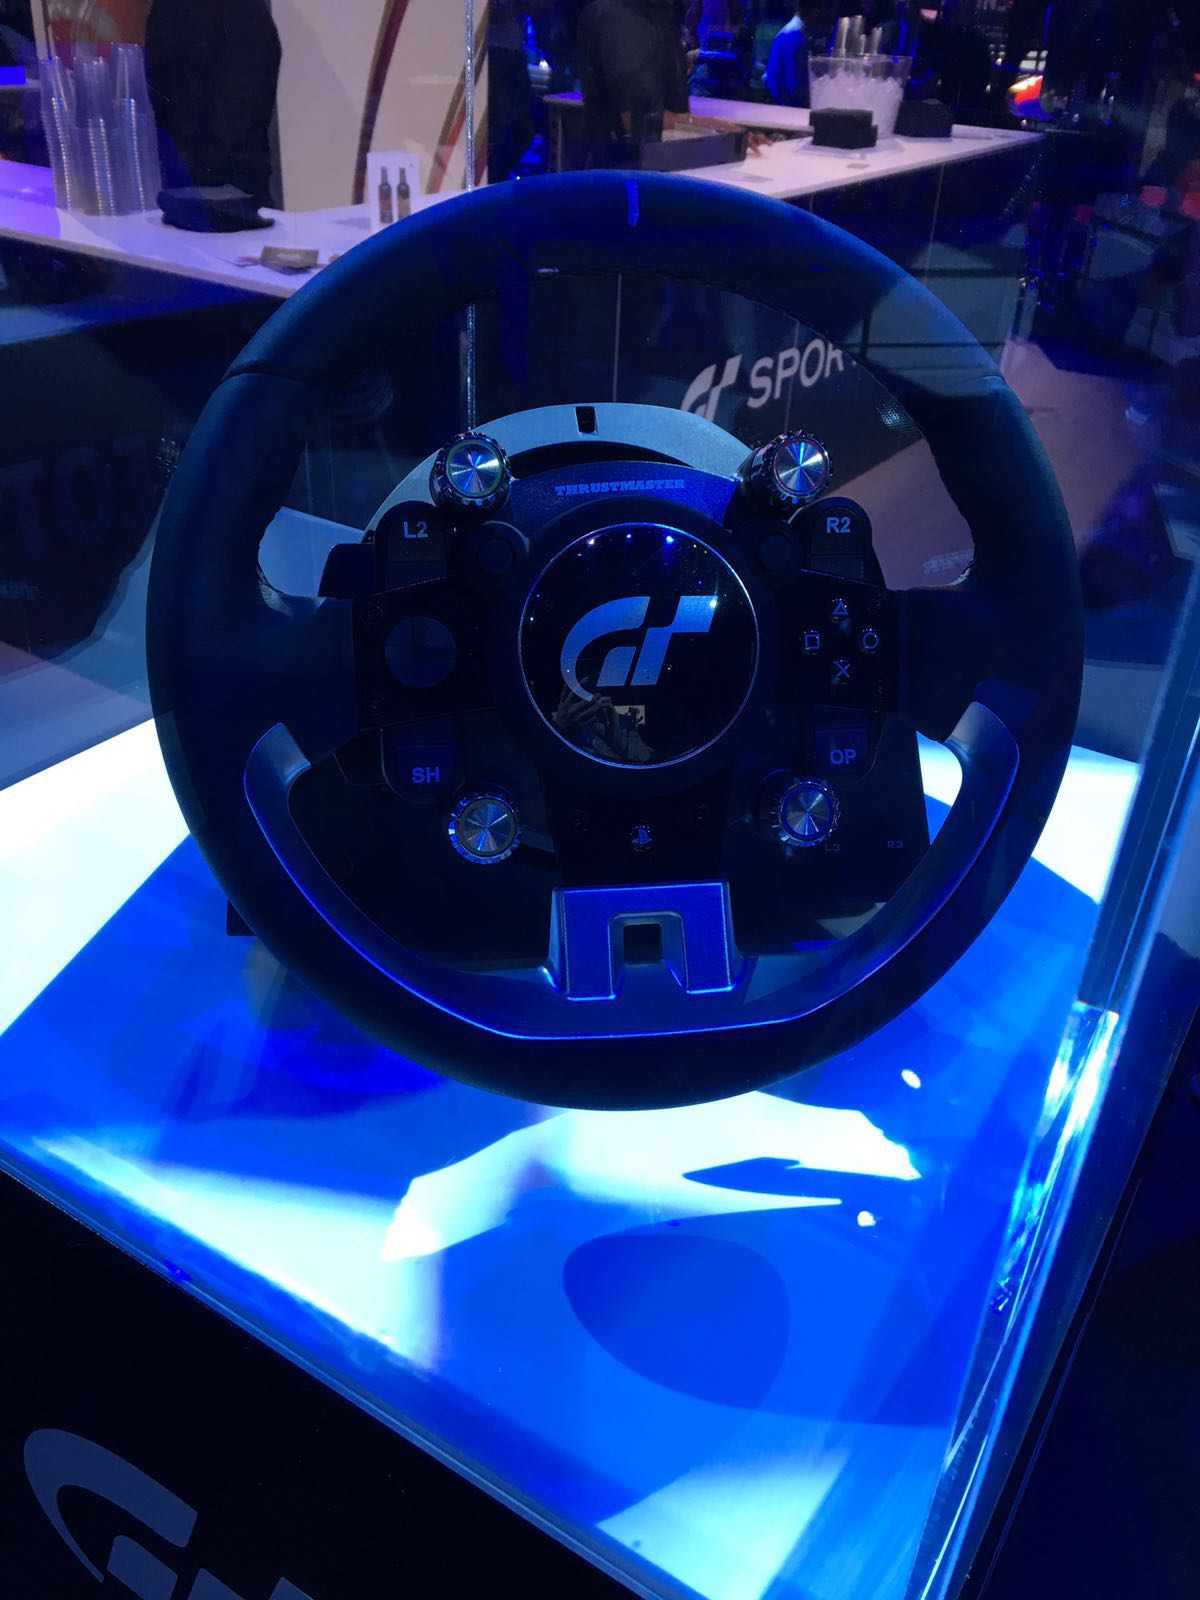 P1 Racing Sport Rim >> First Images of New Gran Turismo Branded Thrustmaster Wheel - Inside Sim Racing